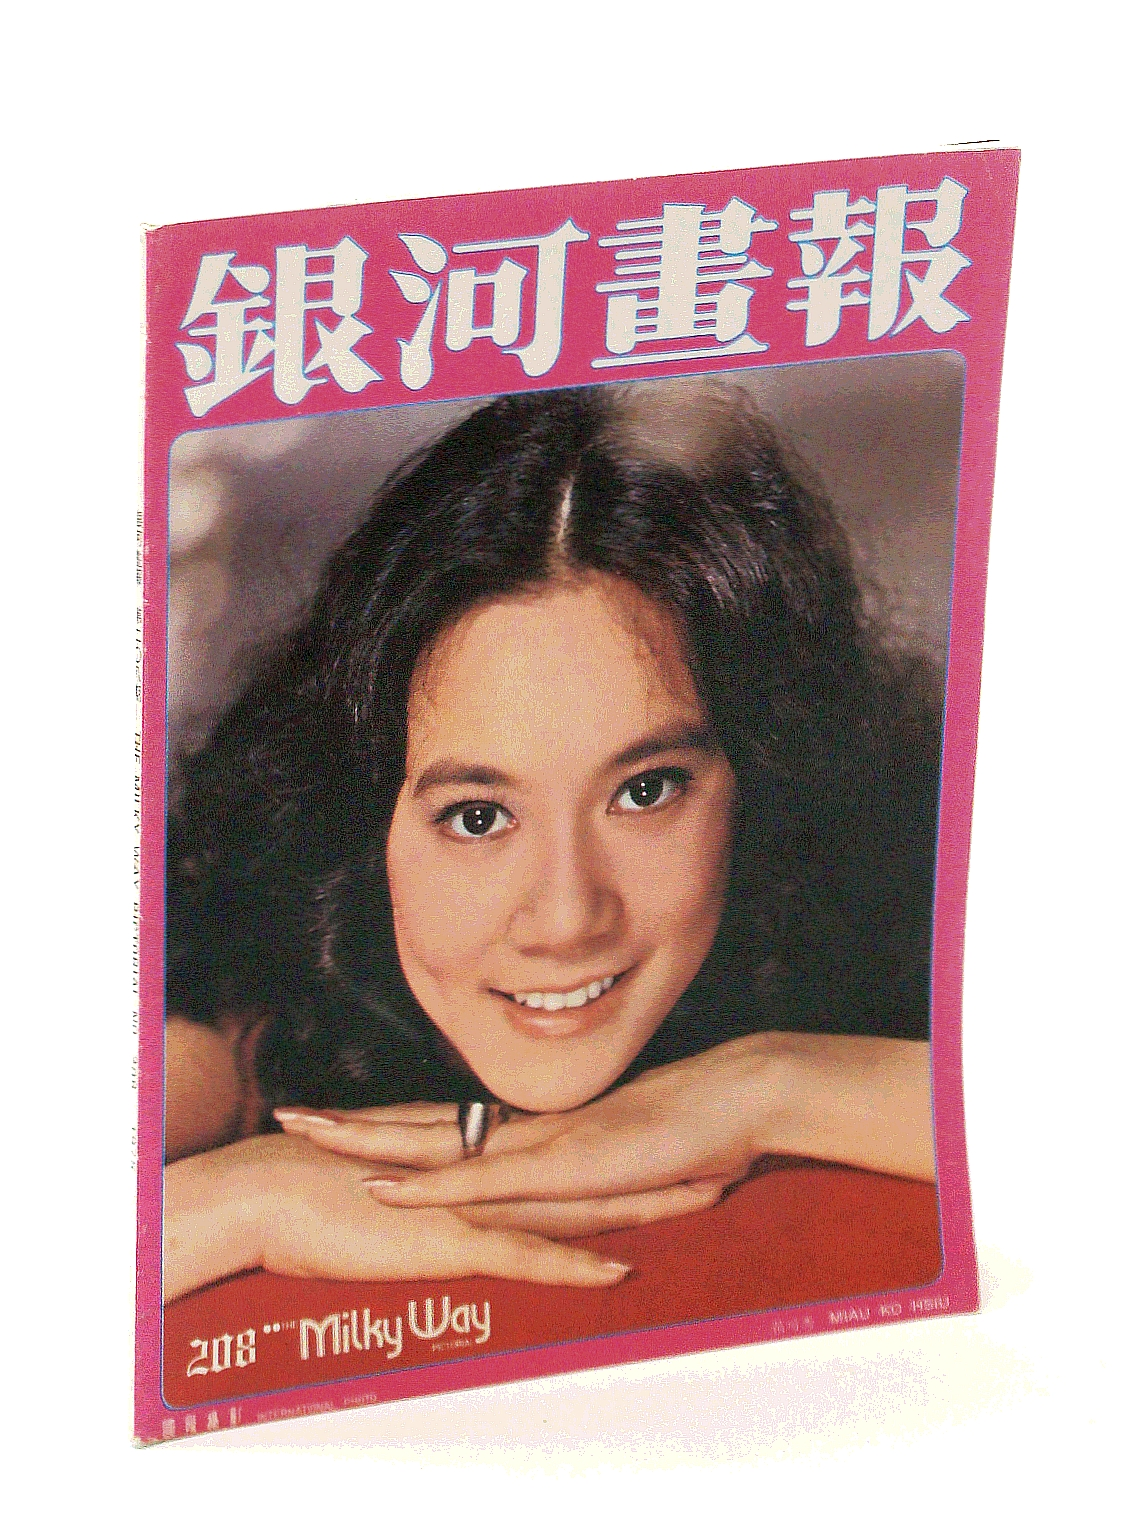 Image for The Milky Way Pictorial [Magazine] No. 208, 1975 - Miau Ko Hsiu Cover Photo